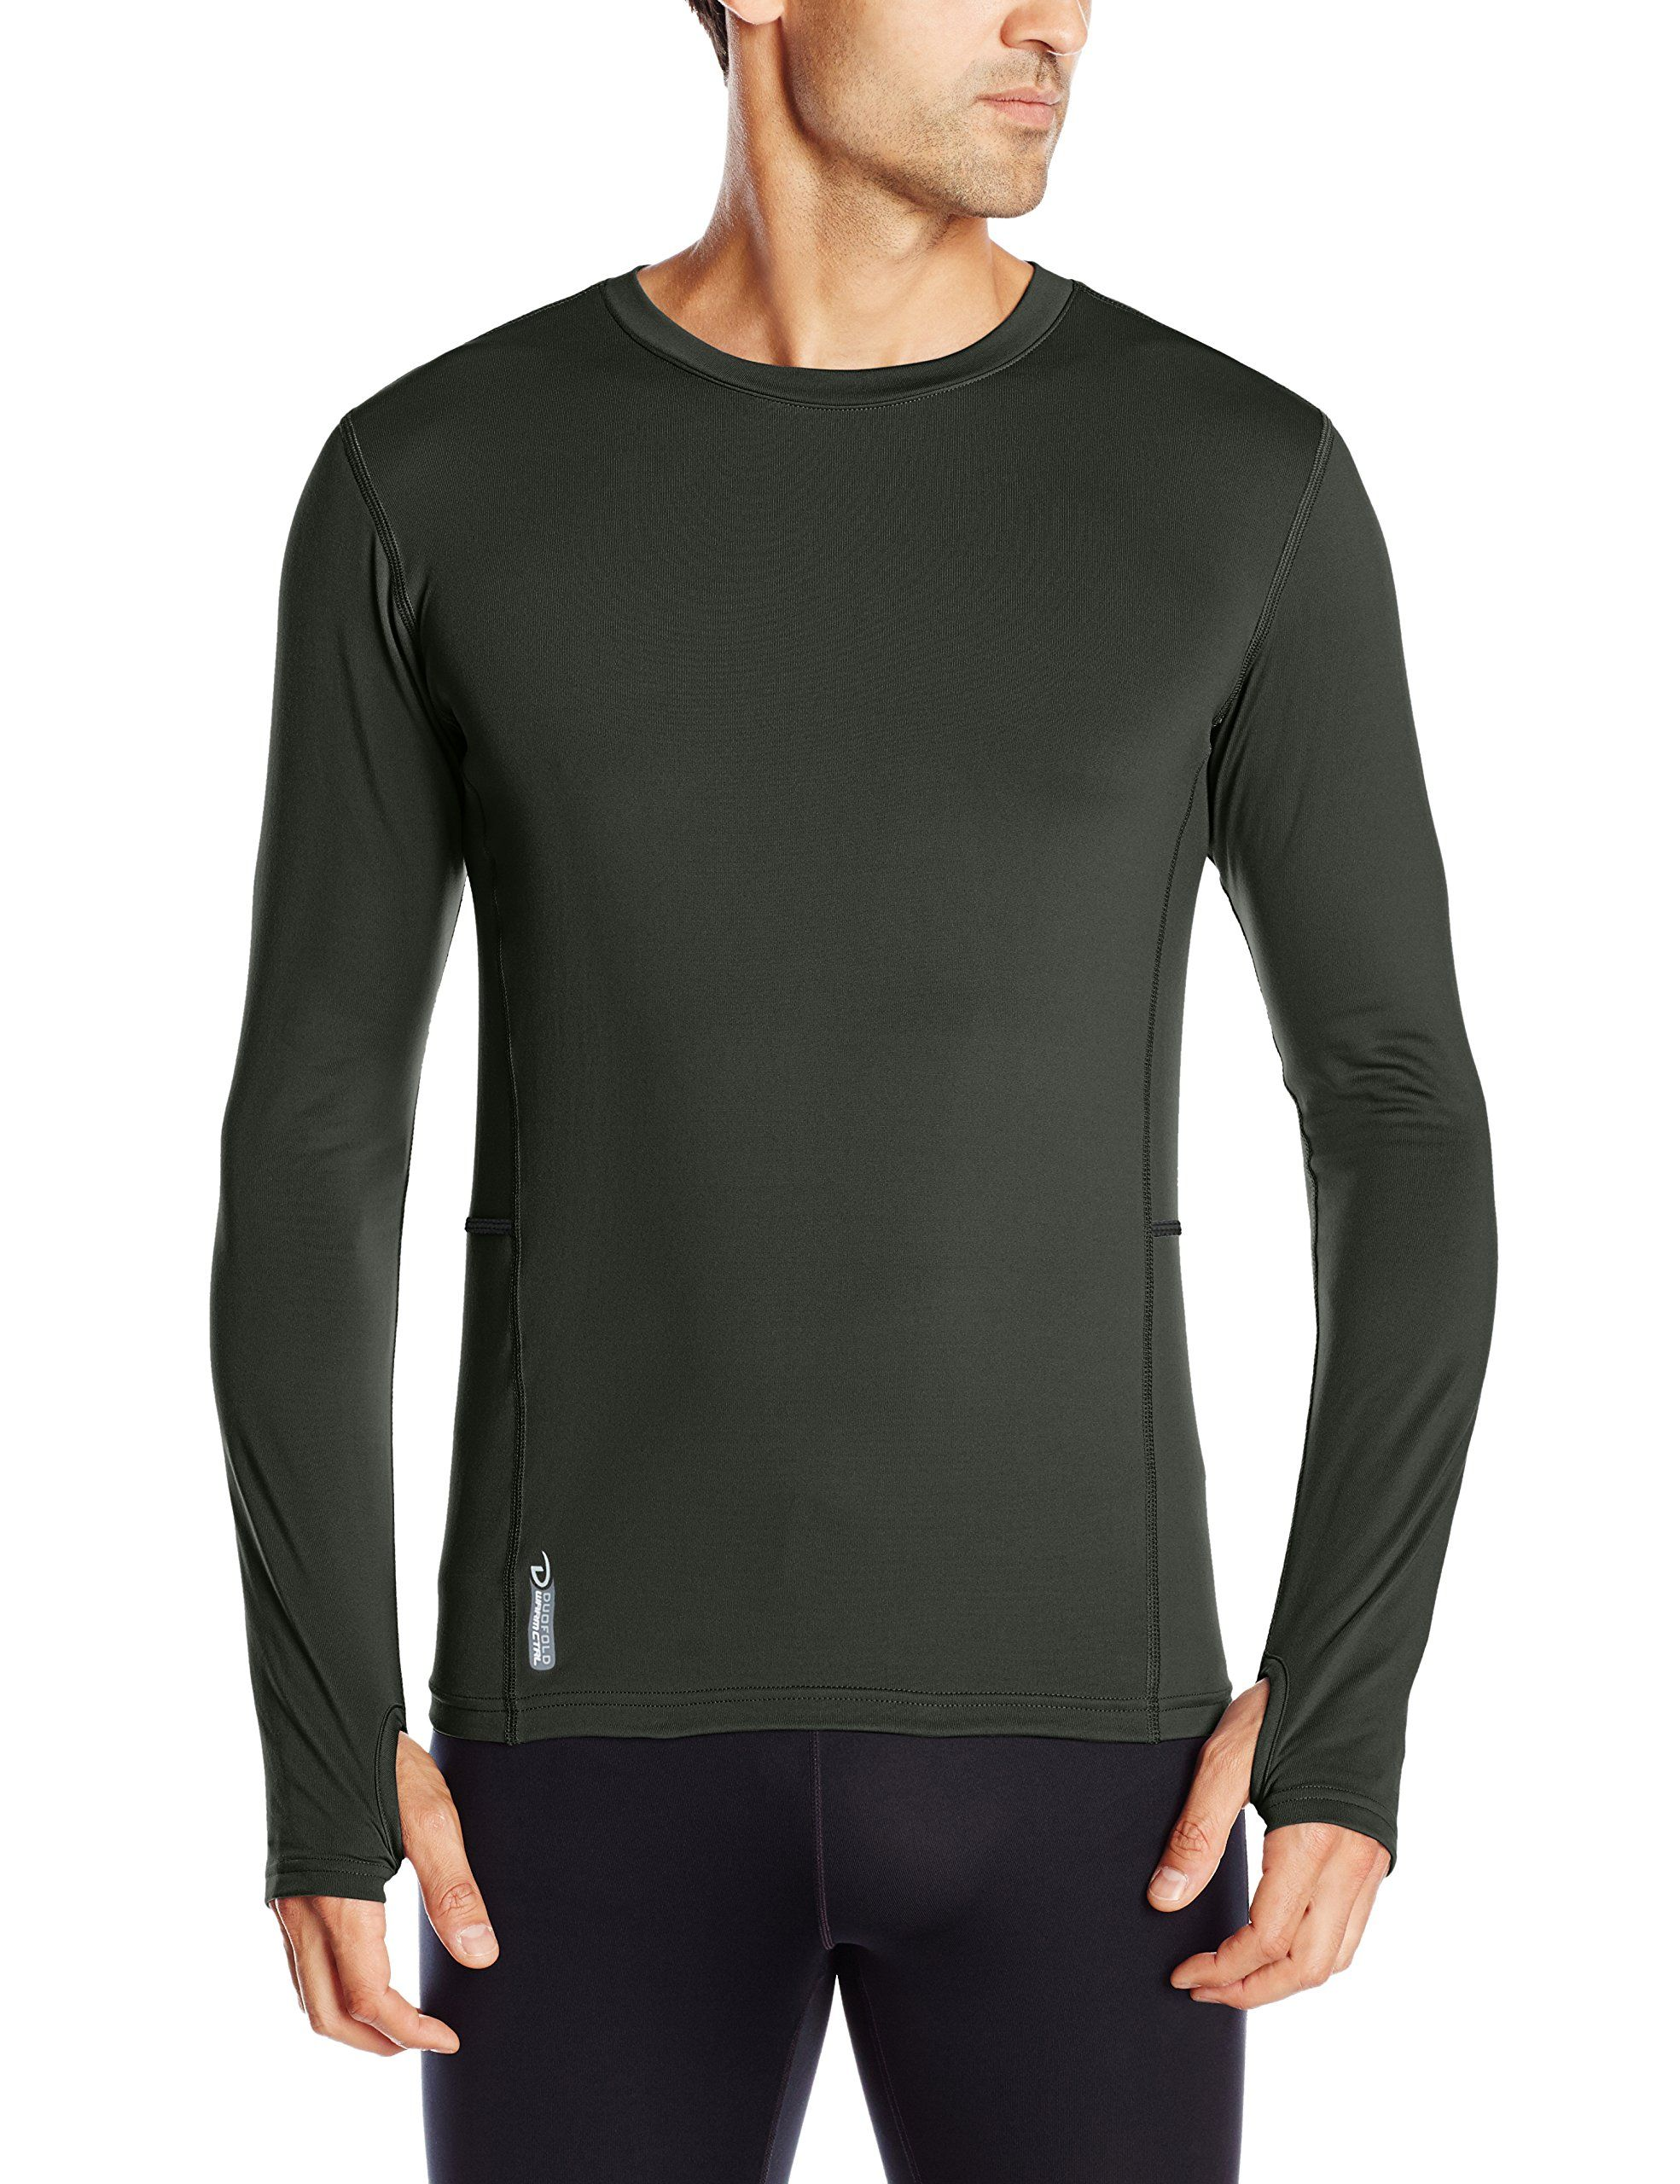 Duofold Mens Mid Weight Fleece Lined Thermal Shirt